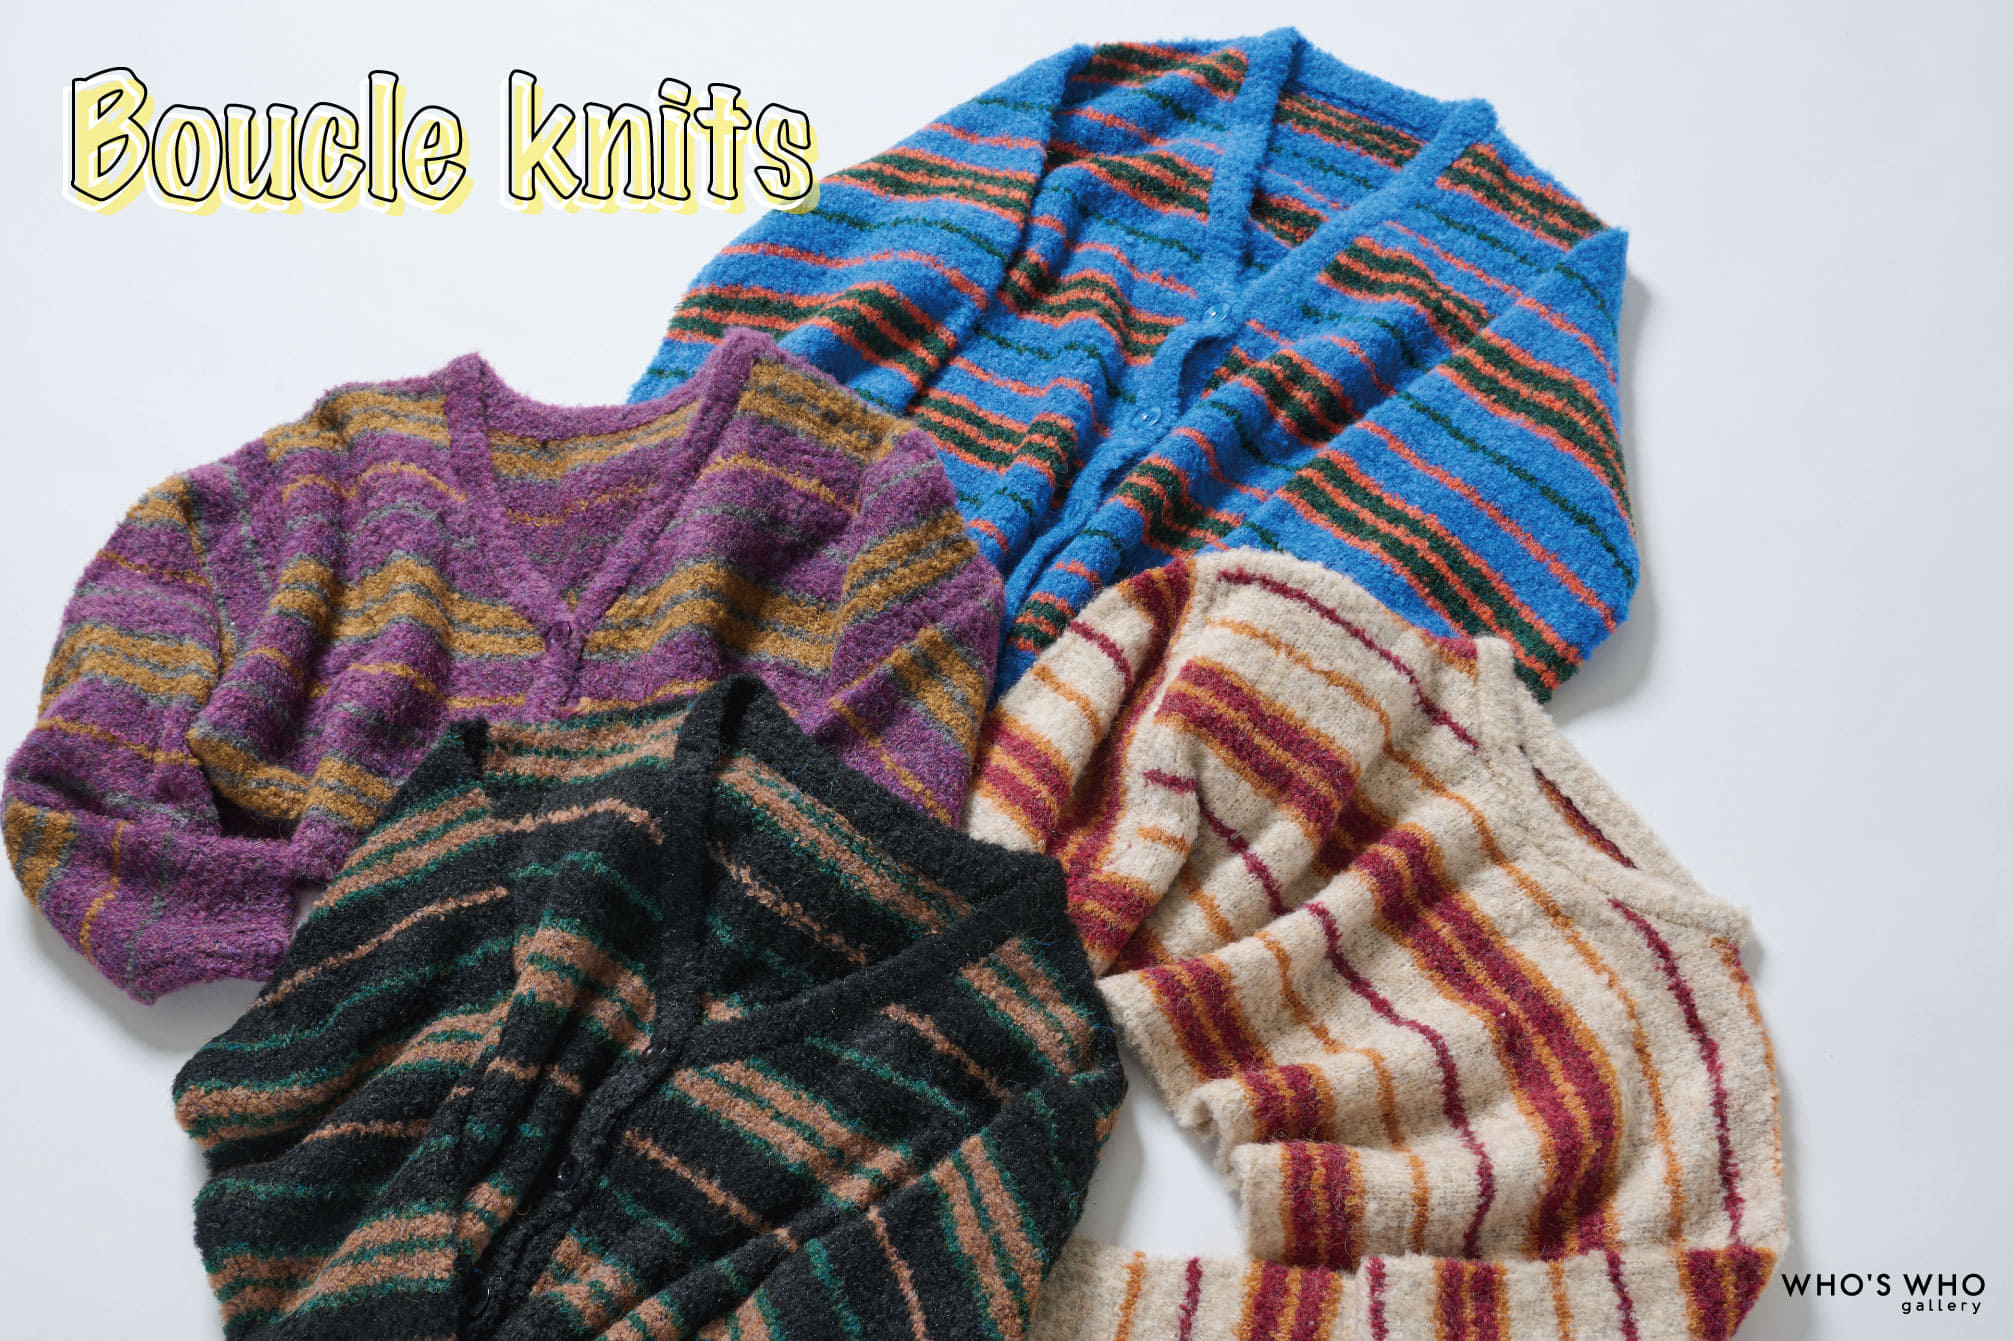 WHO'S WHO gallery 【Boucle knits】